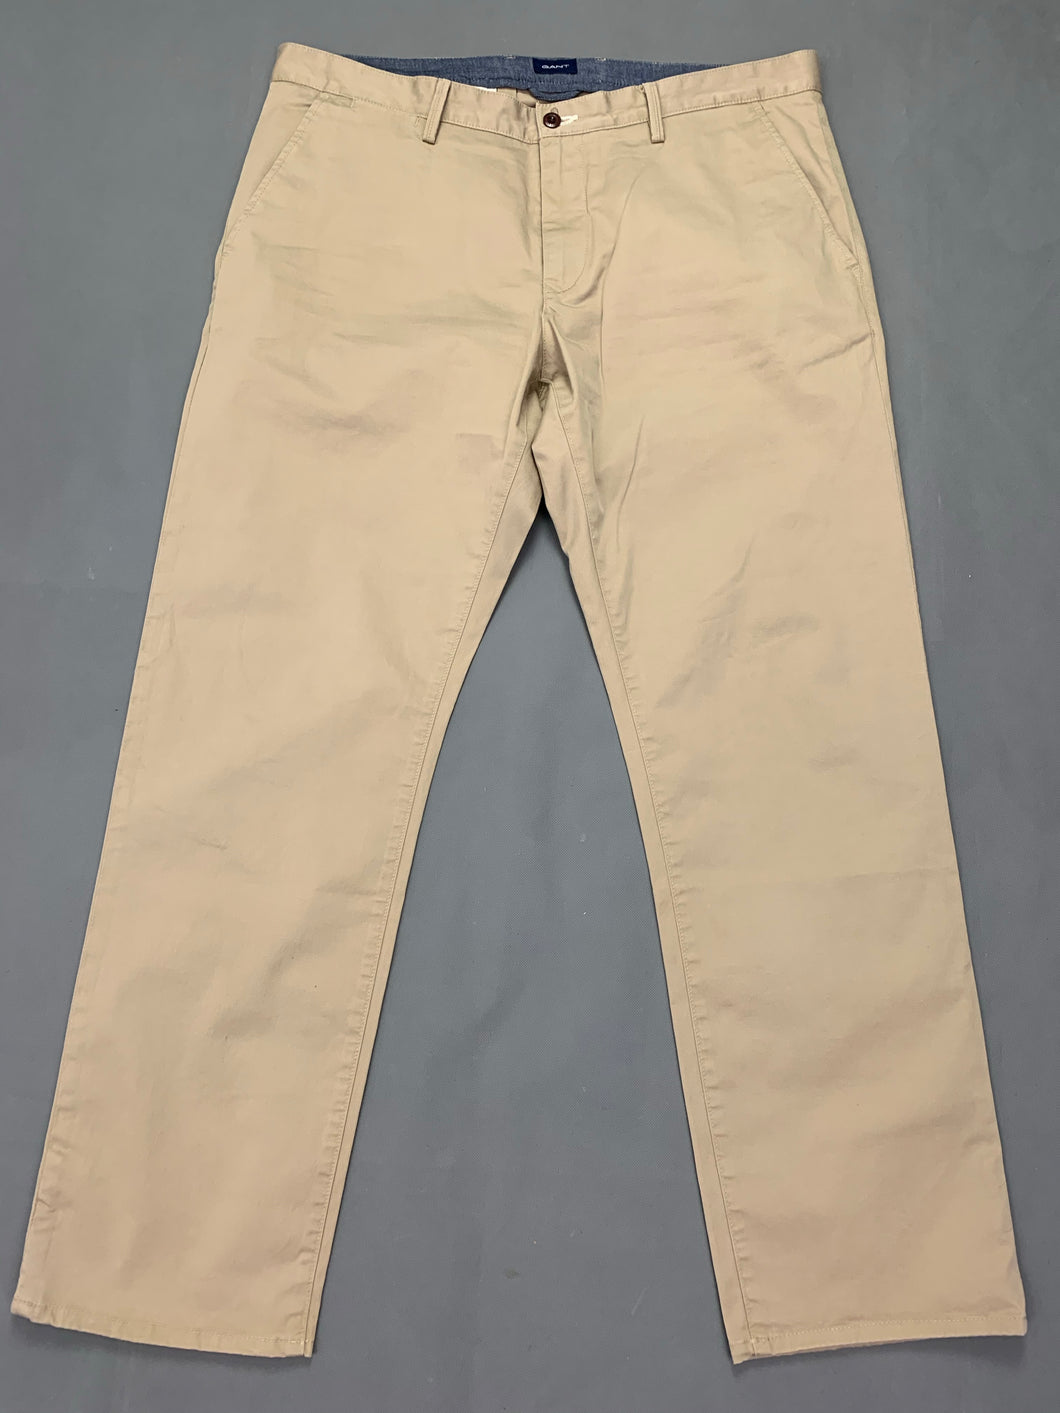 GANT Mens Beige Regular Fit Chinos / TROUSERS Size Waist 38